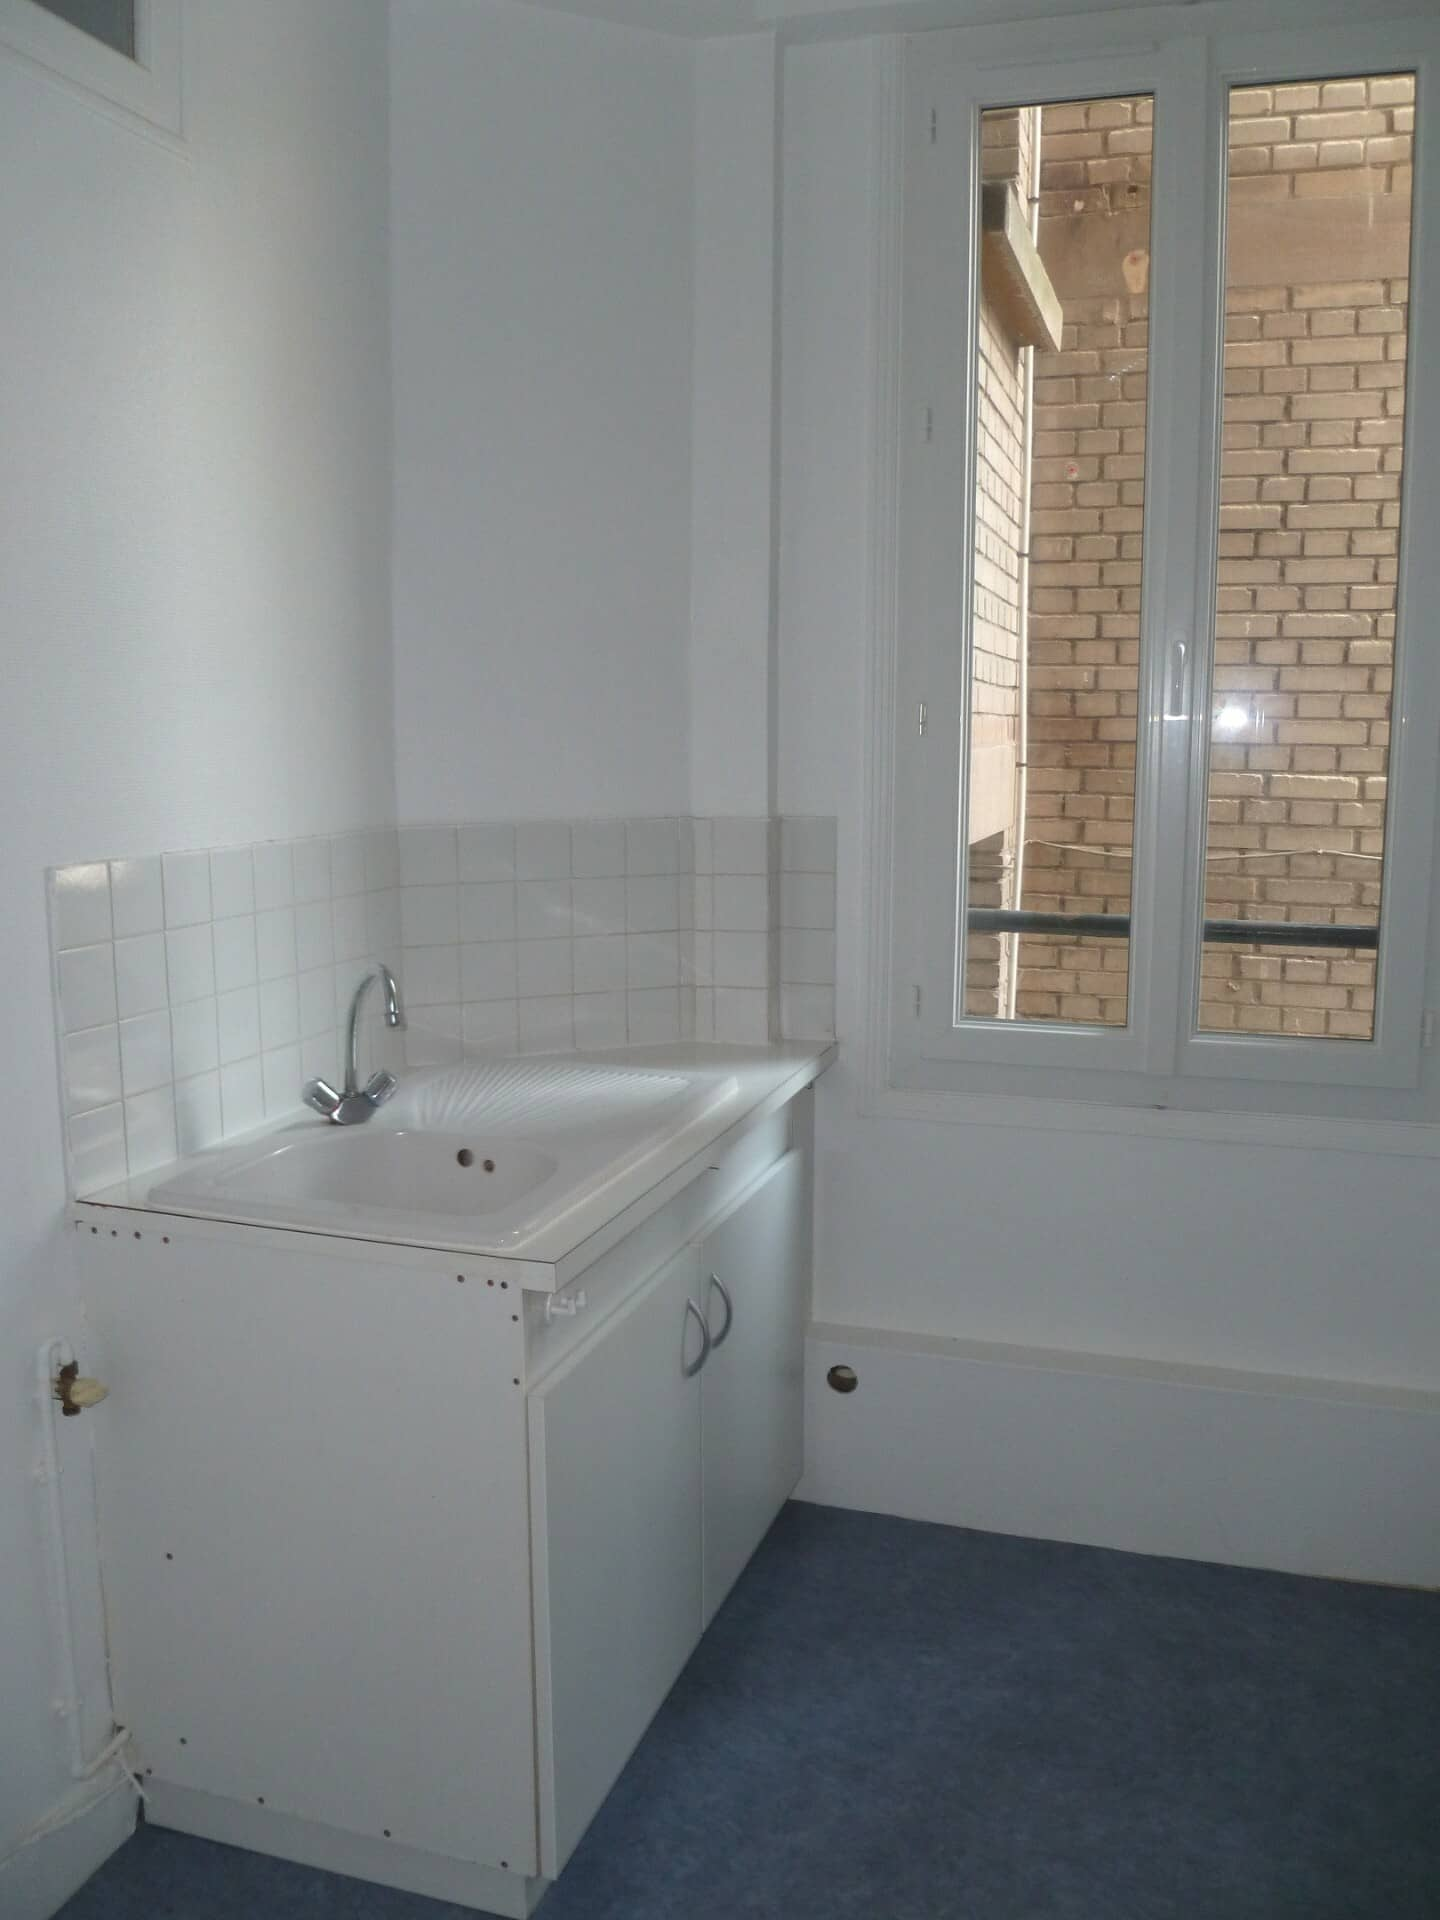 A louer Appartement type F2 Le Havre 216